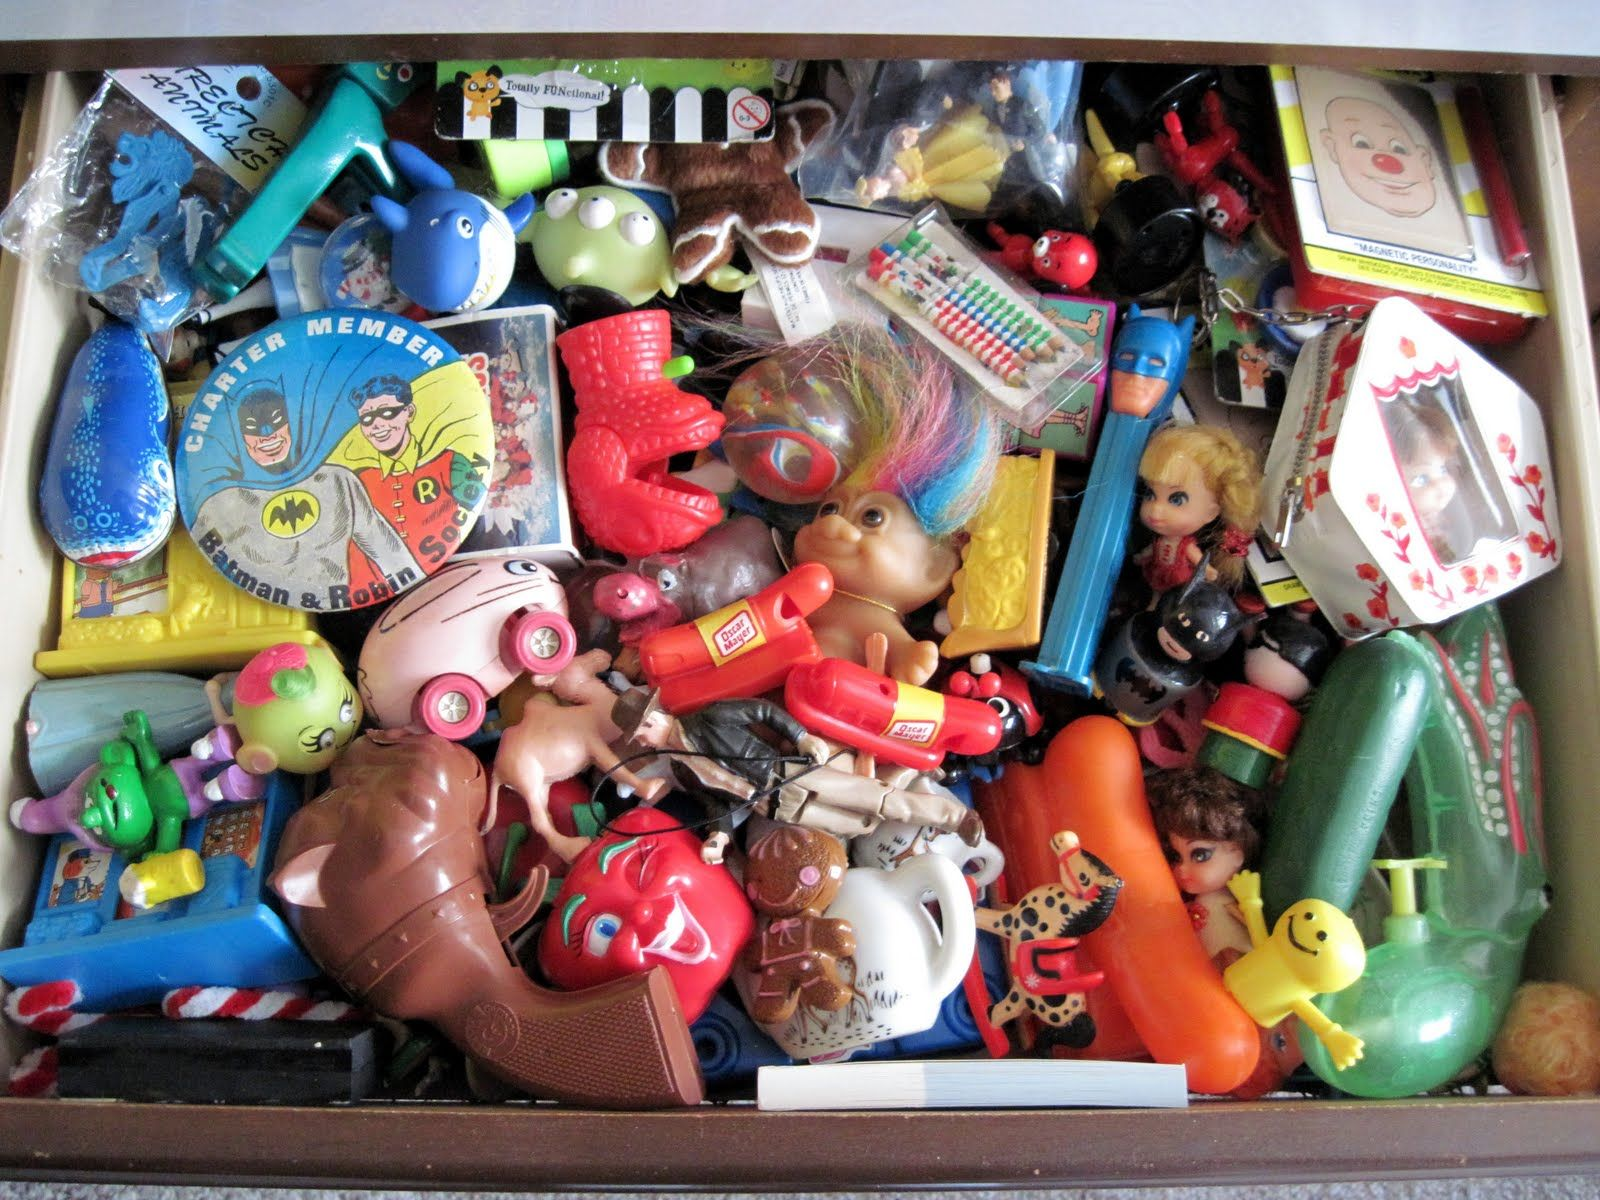 Whirligig Toys - How Green Are Our Toys?